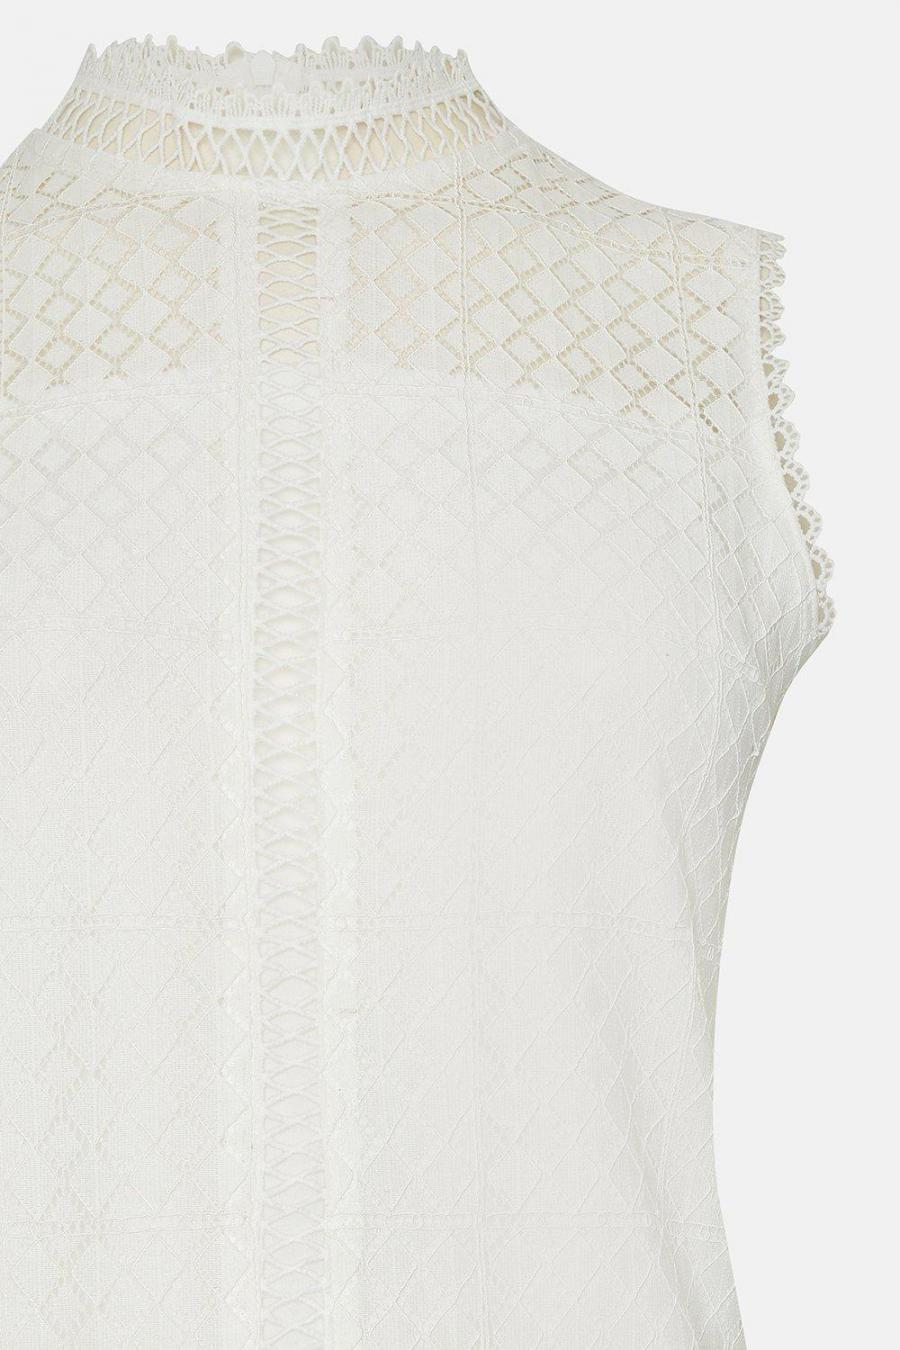 Coast Shell Tops | Womens High Neck Lace Trim Detail Shell Top Ivory